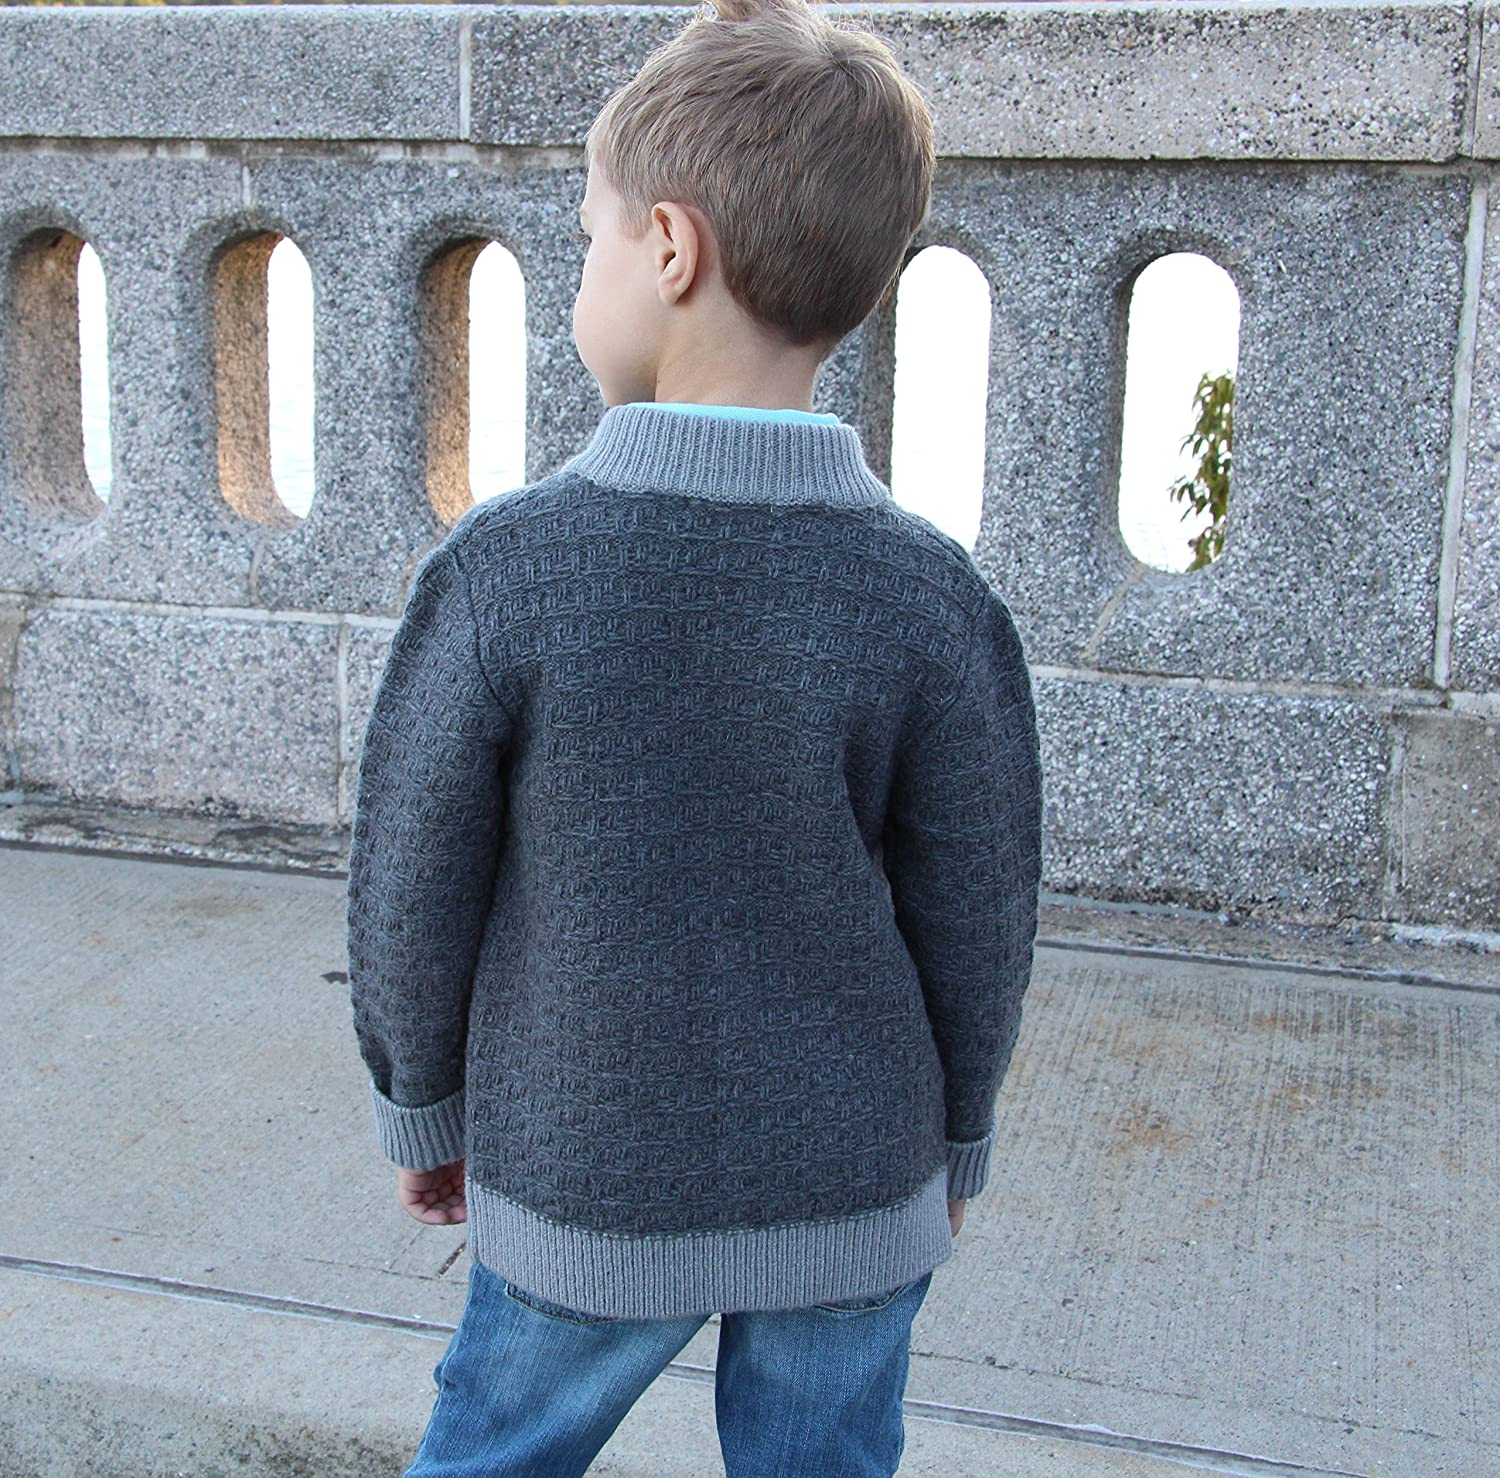 Dakomoda Toddler Boys Thick Wool Gray Cardigan Sweater with Pockets